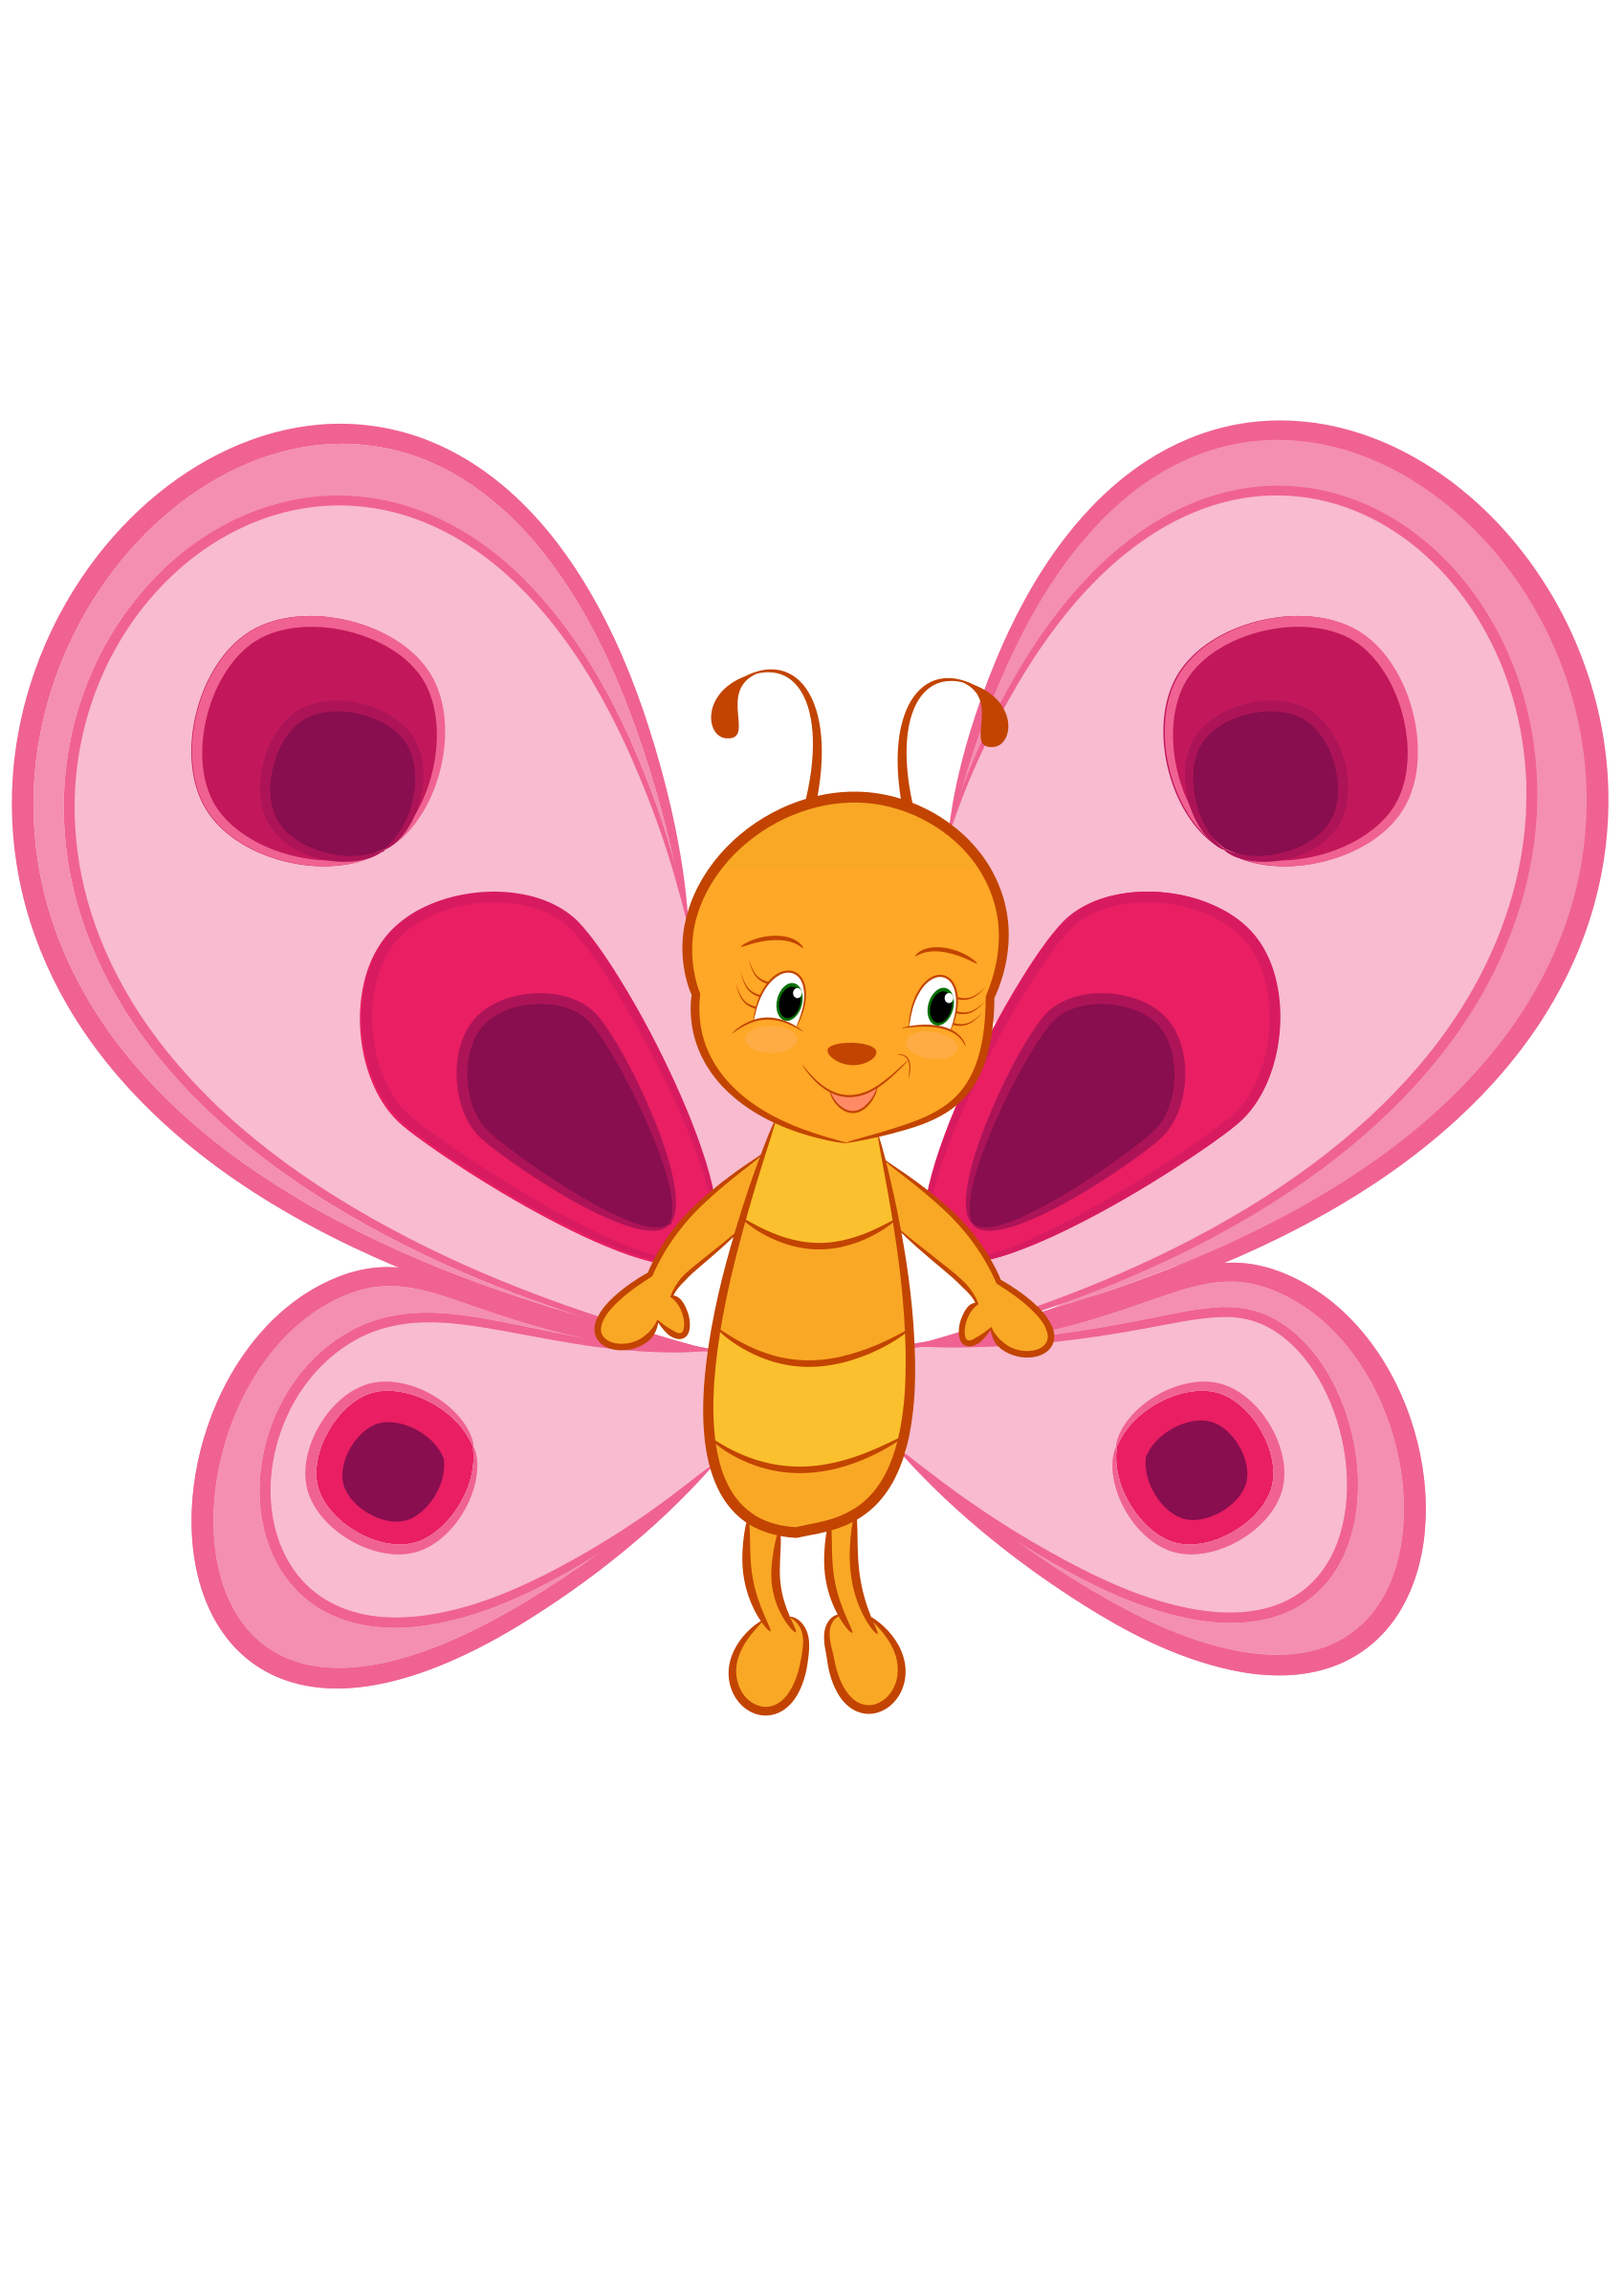 Clipart cute big image. Butterfly vector png